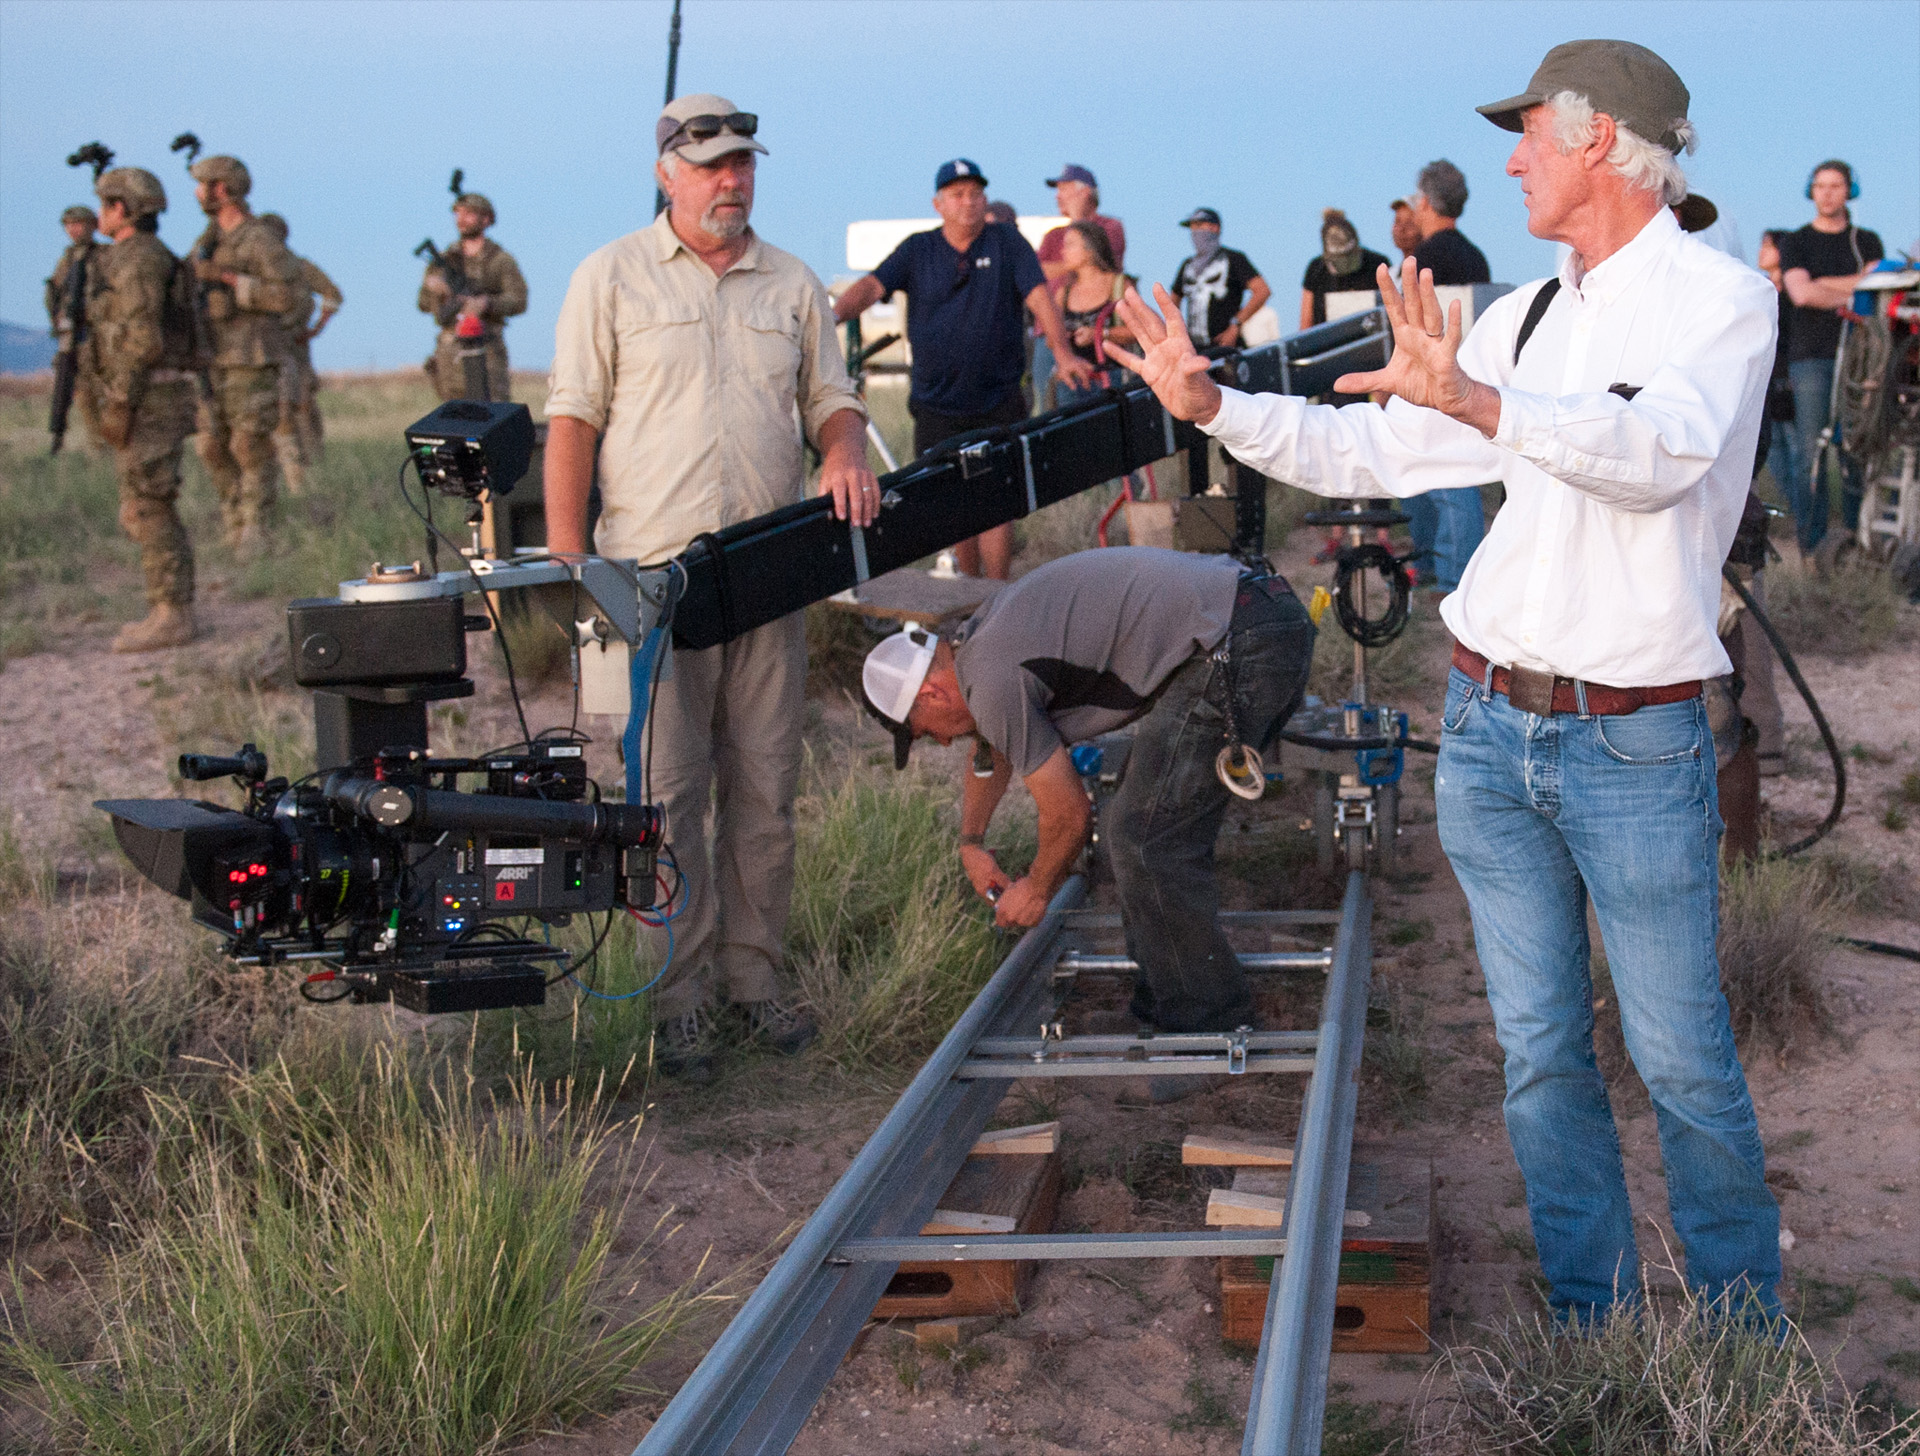 http://www.theasc.com/site/blog/thefilmbook/sicario-interview-with-roger-deakins-asc-bsc/